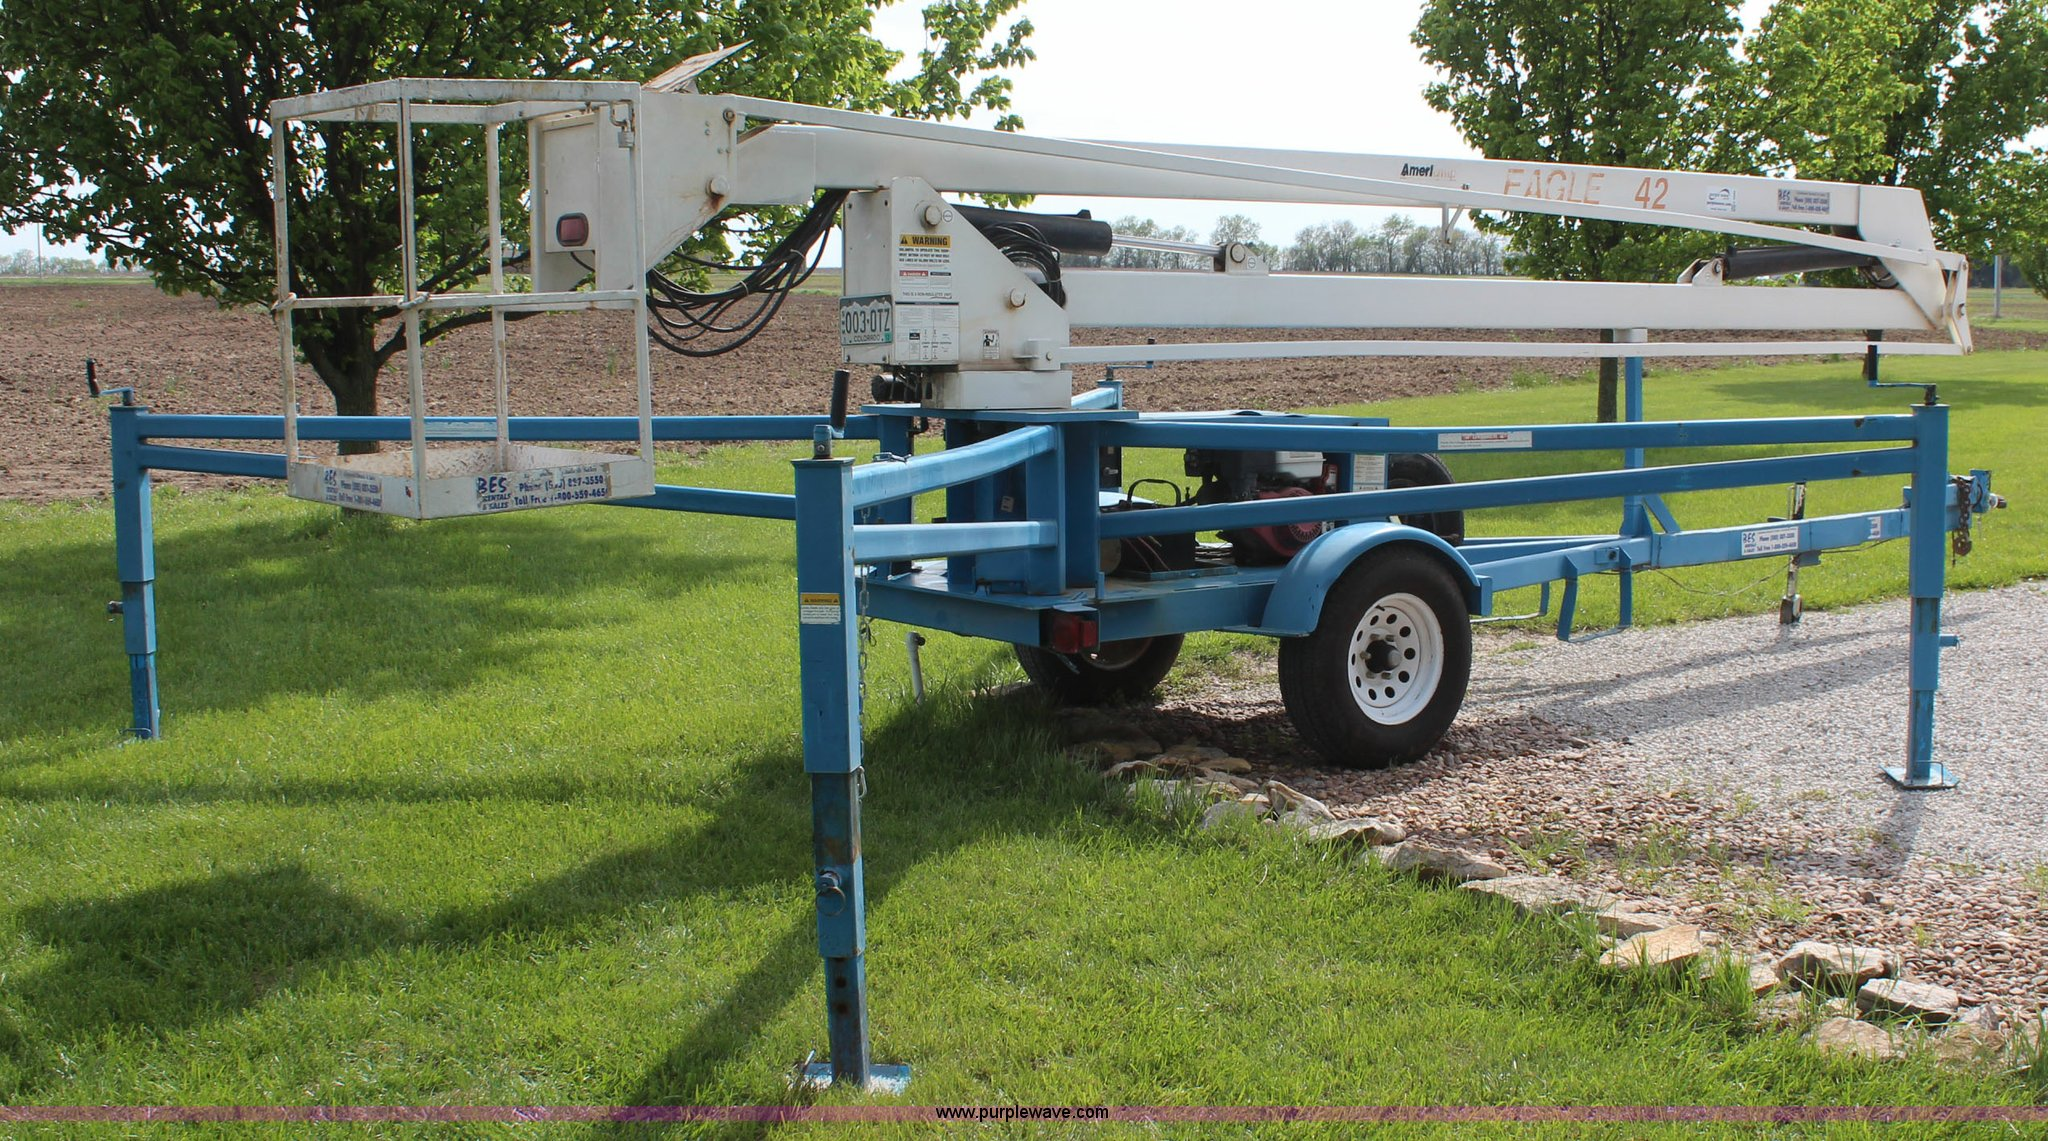 Eagle 2 45 Lift Wiring Diagram Will Be A Thing Wheelchair 1999 Ameriquip 42 Towable Boom Item K6999 Sol Rh Purplewave Com Stair Diagrams